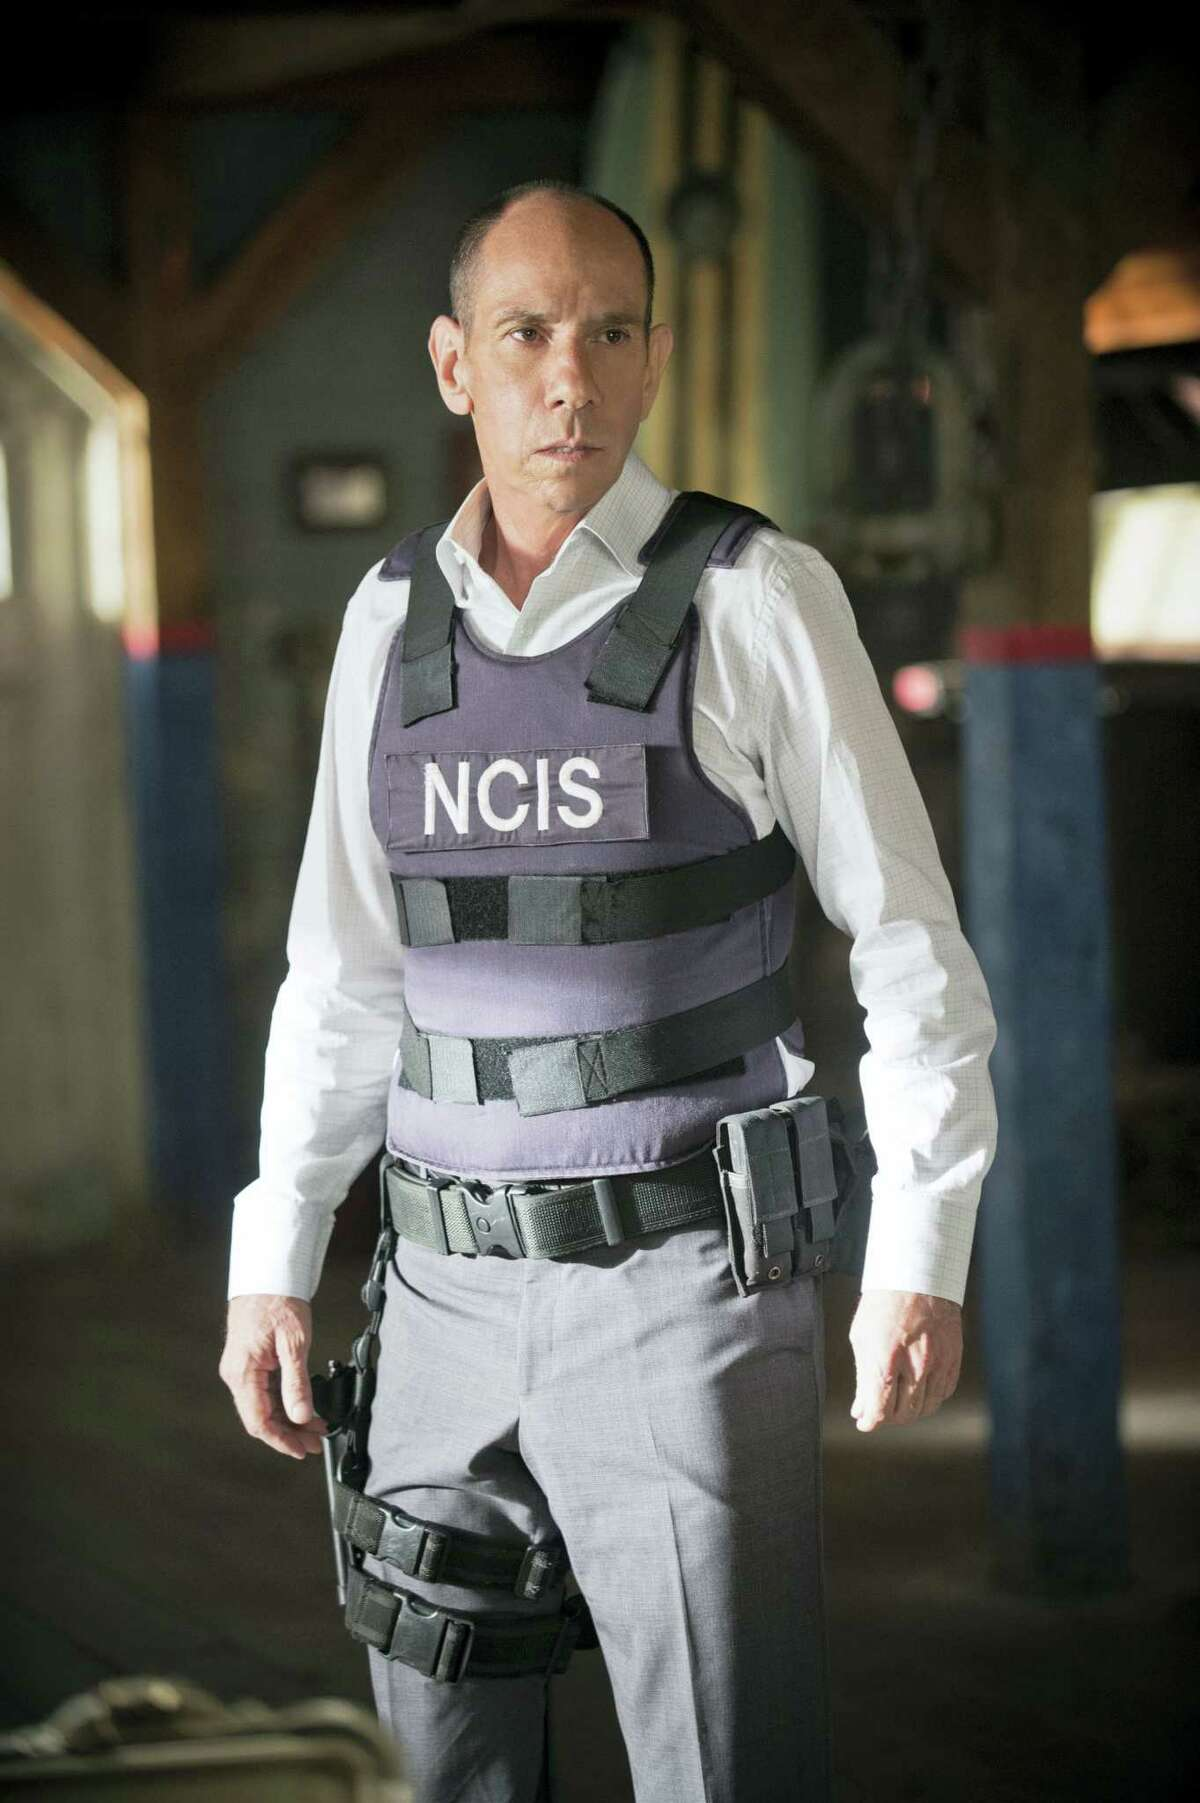 """This image released by CBS shows Miguel Ferrer in character as NCIS Assistant Director Owen Granger in NCIS: Los Angeles. Ferrer, who brought stern authority to his featured role on CBS' hit drama """"NCIS: Los Angeles"""" and, before that, to """"Crossing Jordan,"""" died Thursday, Jan. 19, 2017, of cancer at his Los Angeles home. He was 61."""